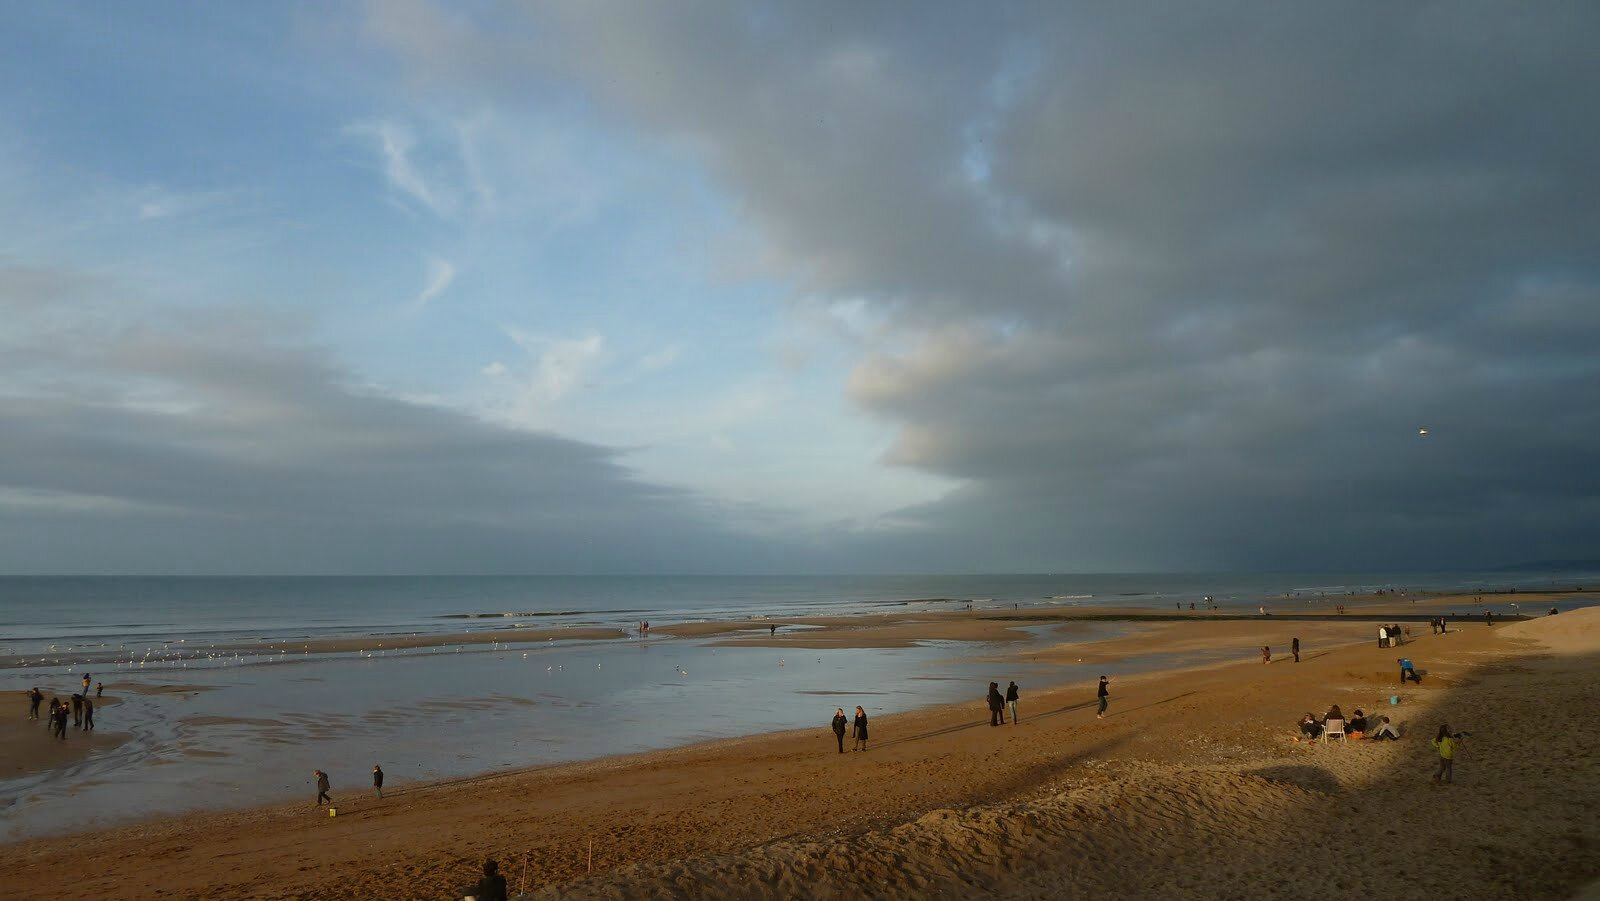 cabourg%252010%252011%2520022